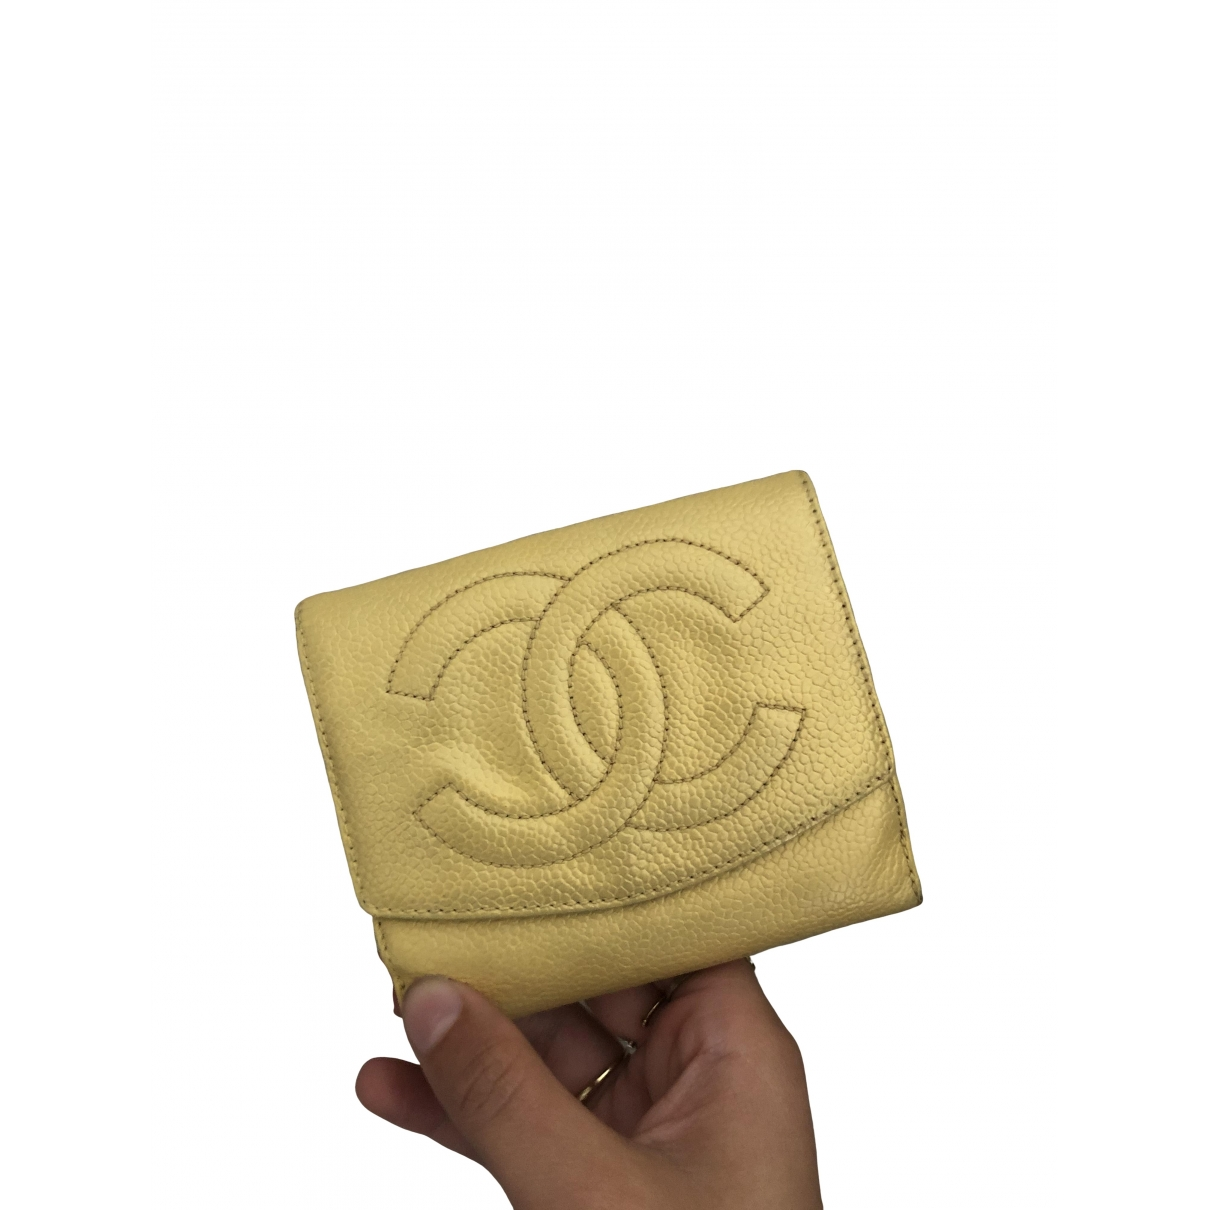 Chanel \N Gold Leather Purses, wallet & cases for Women \N